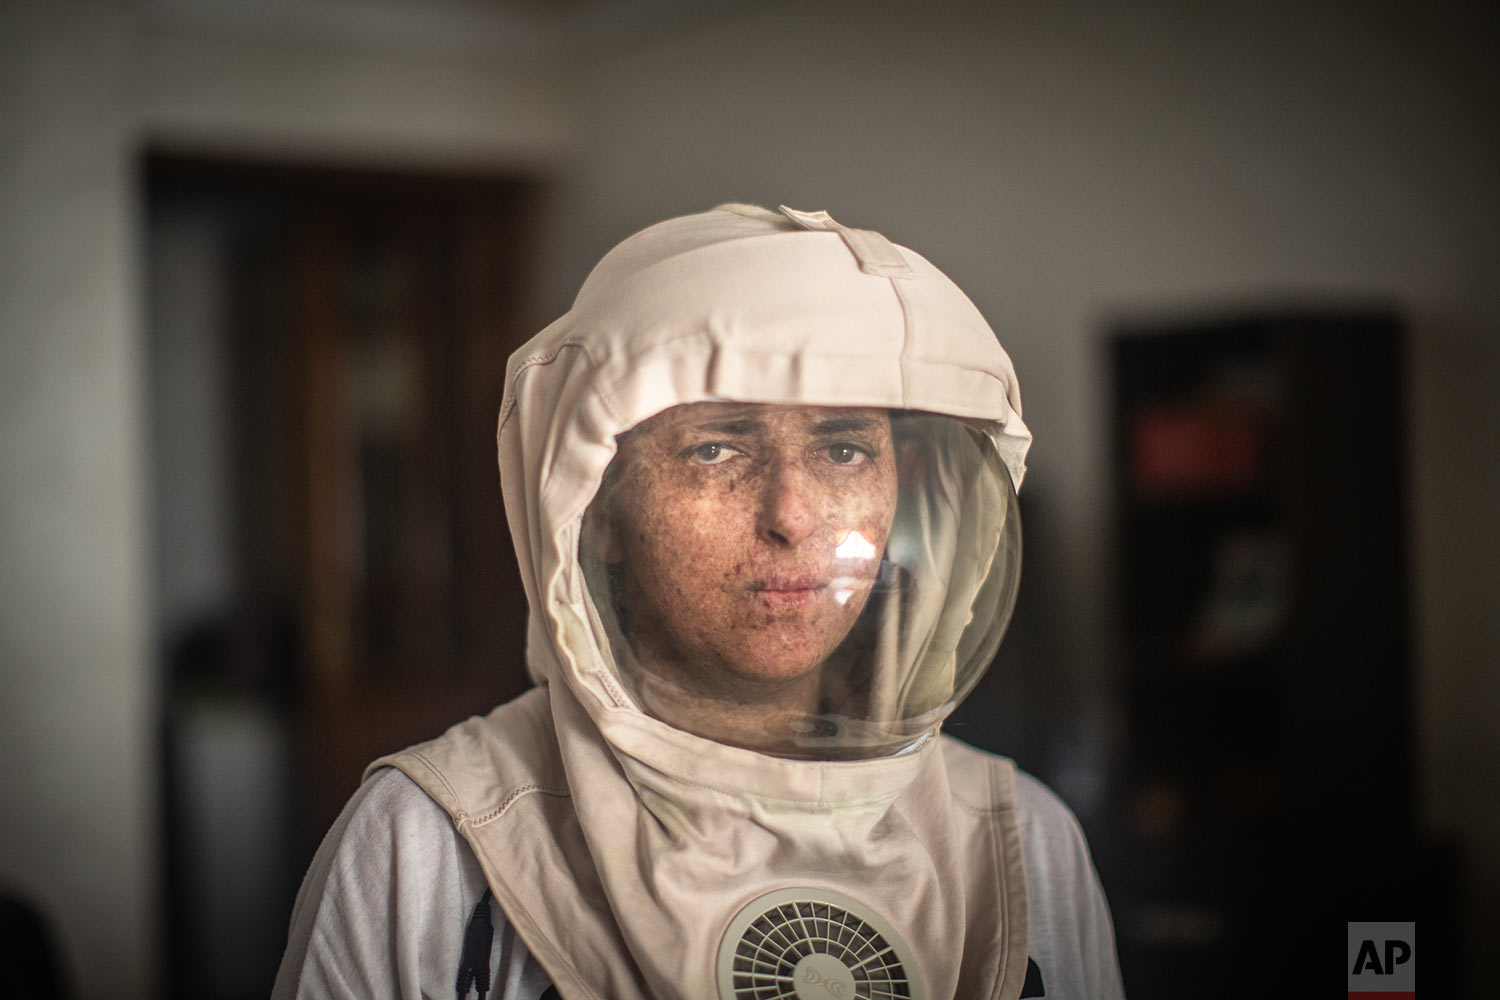 Fatimazehra El Ghazaoui, 27, a woman affected by a rare disorder called xeroderma pigmentosum, or XP, poses for a portrait wearing a protective mask she wears outside on sunny days, in her home in Mohammedia, near Casablanca, Morocco, July 16, 2019. (AP Photo/Mosa'ab Elshamy)